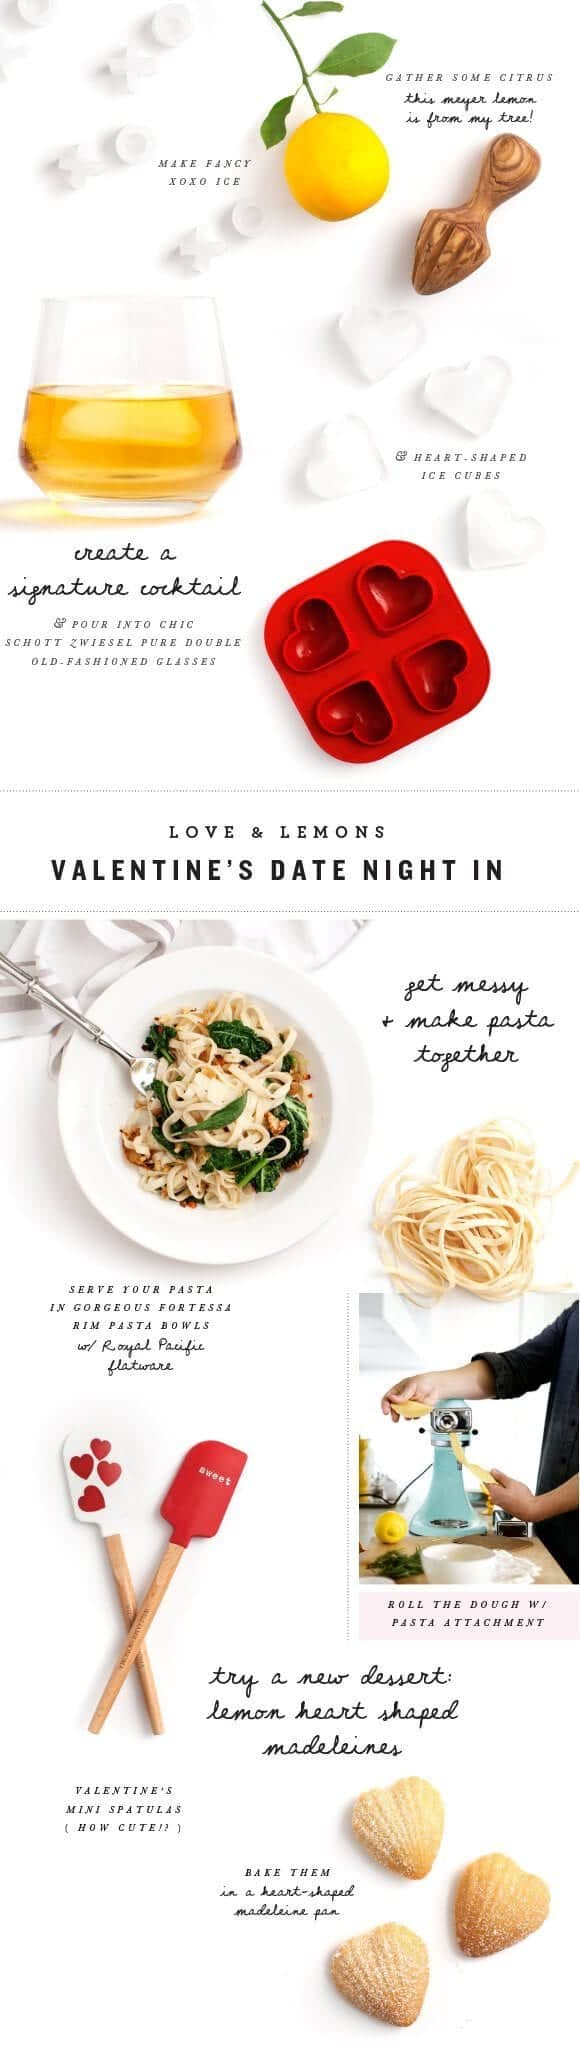 Love & Lemons Valentine's Date Night Ideas